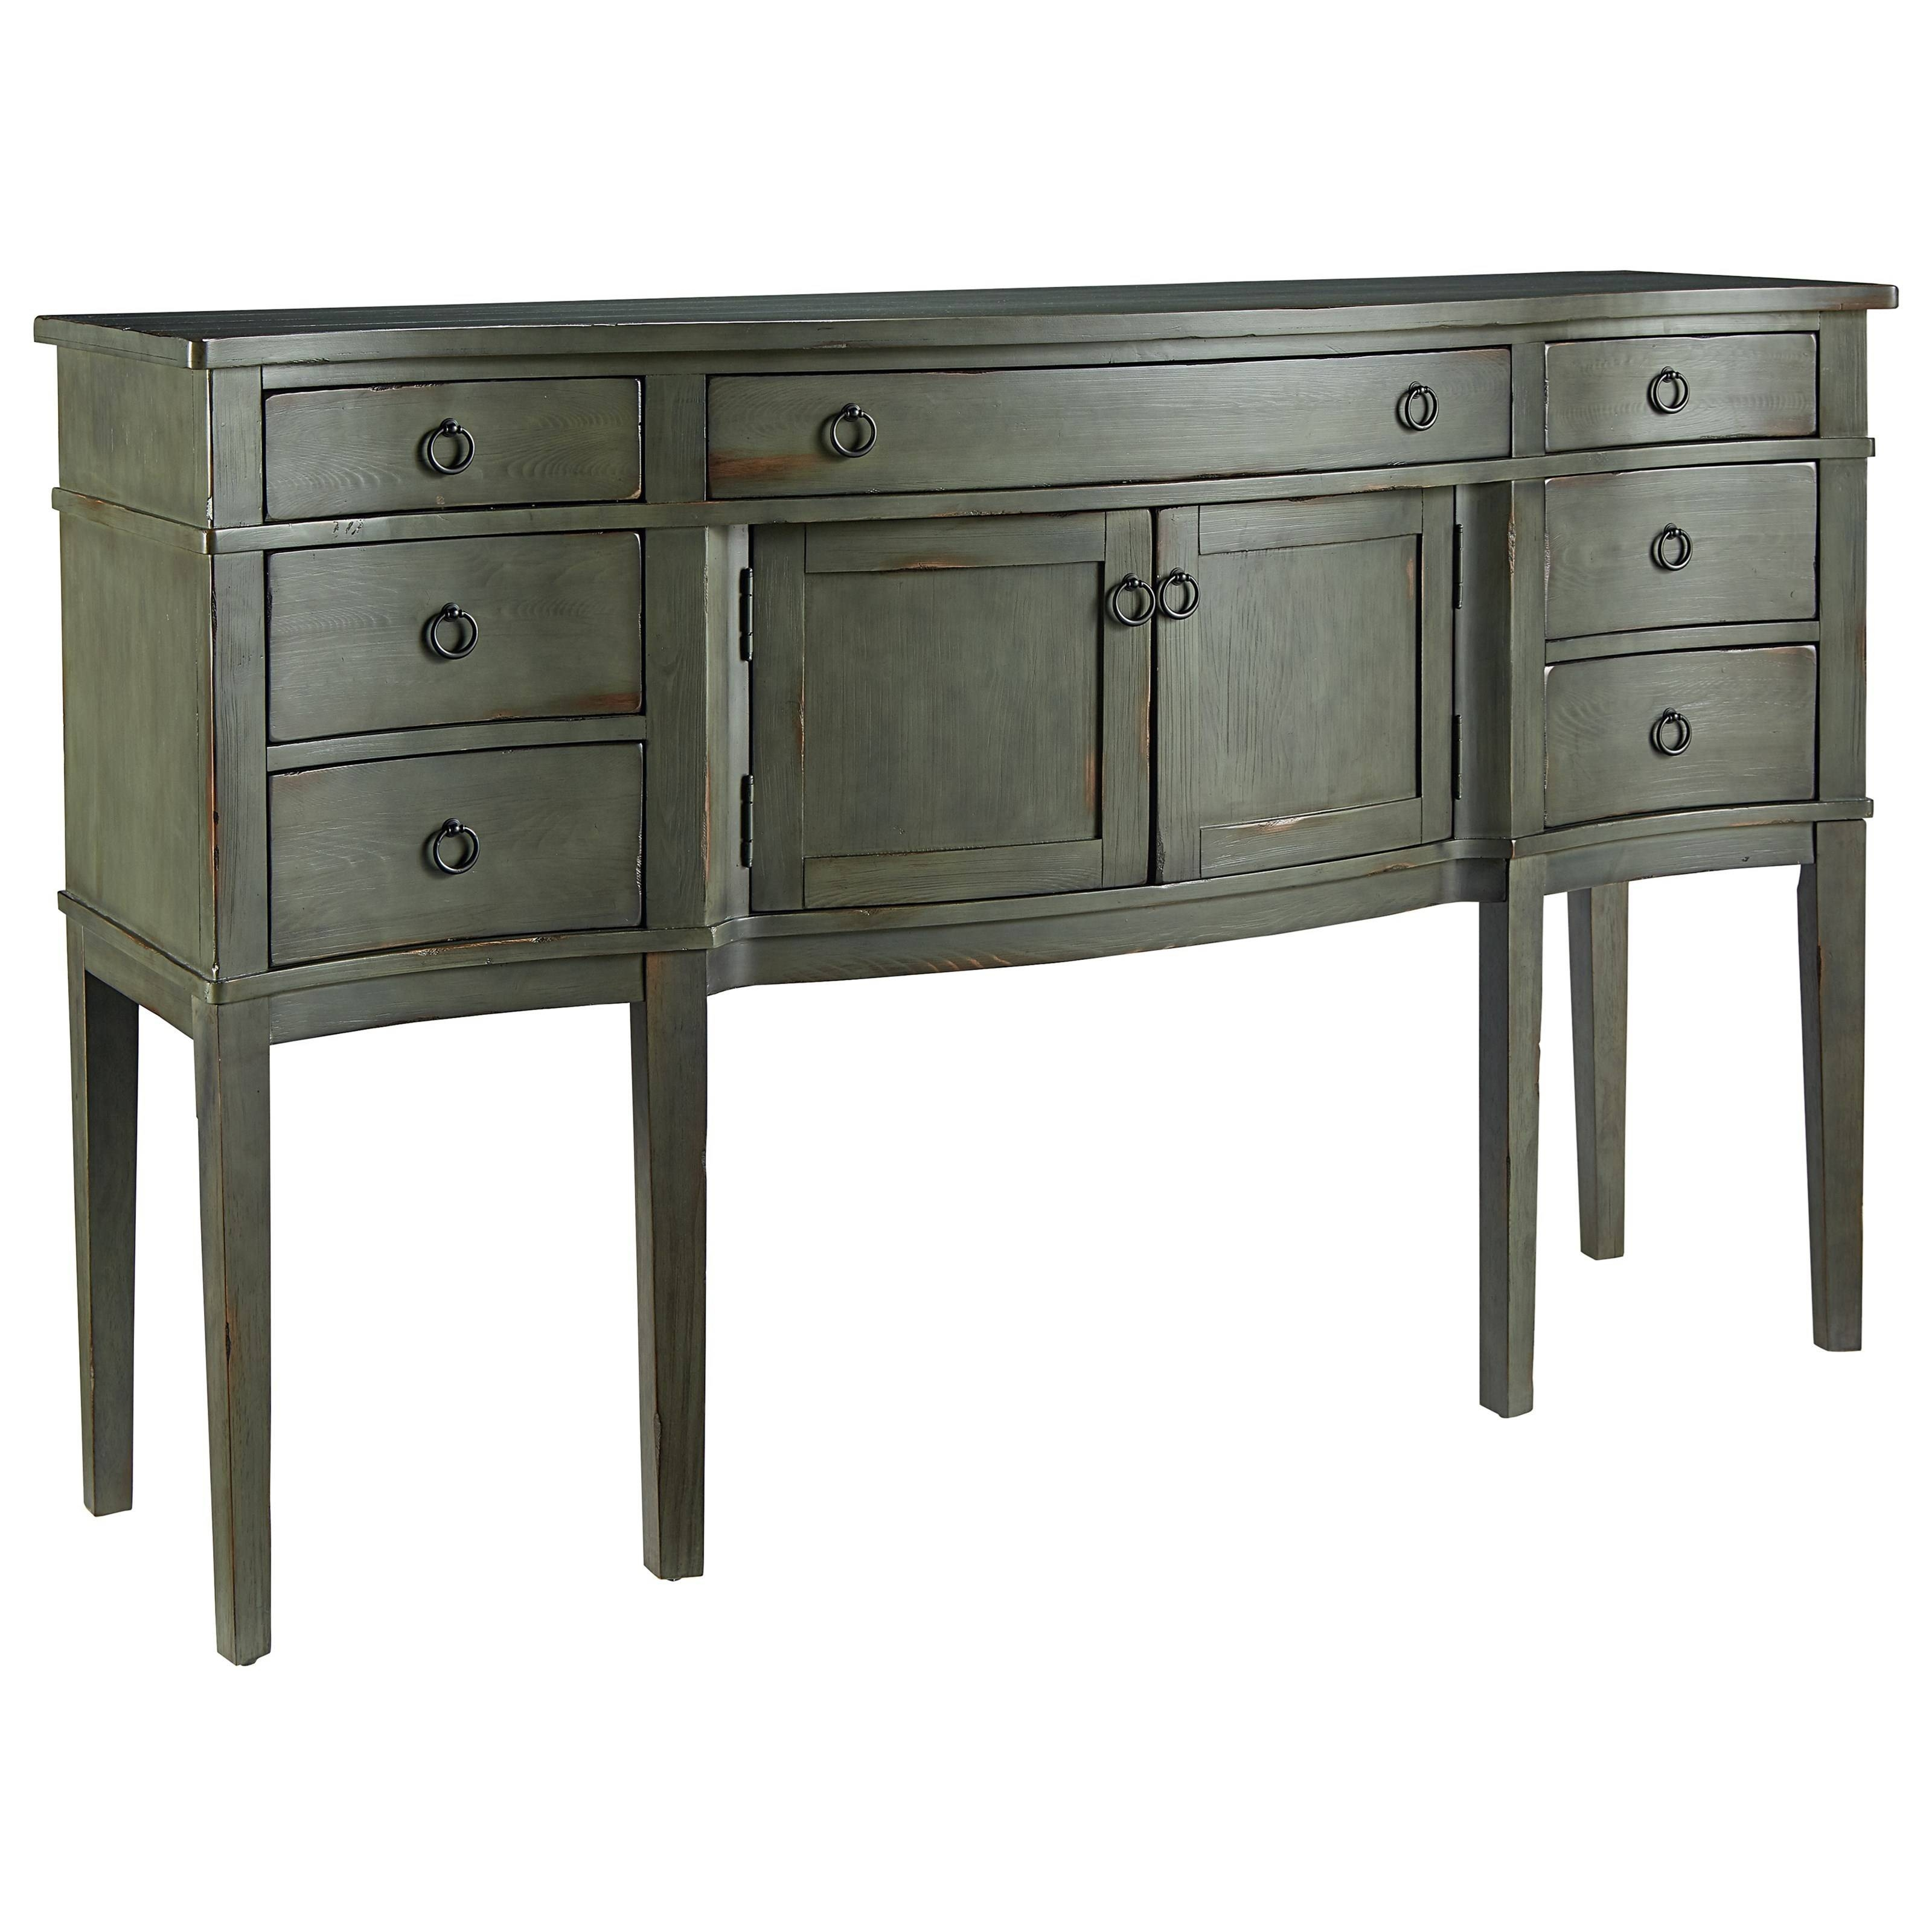 Traditional Sheraton Sideboardmagnolia Homejoanna Gaines Pertaining To Traditional Sideboards (View 1 of 15)